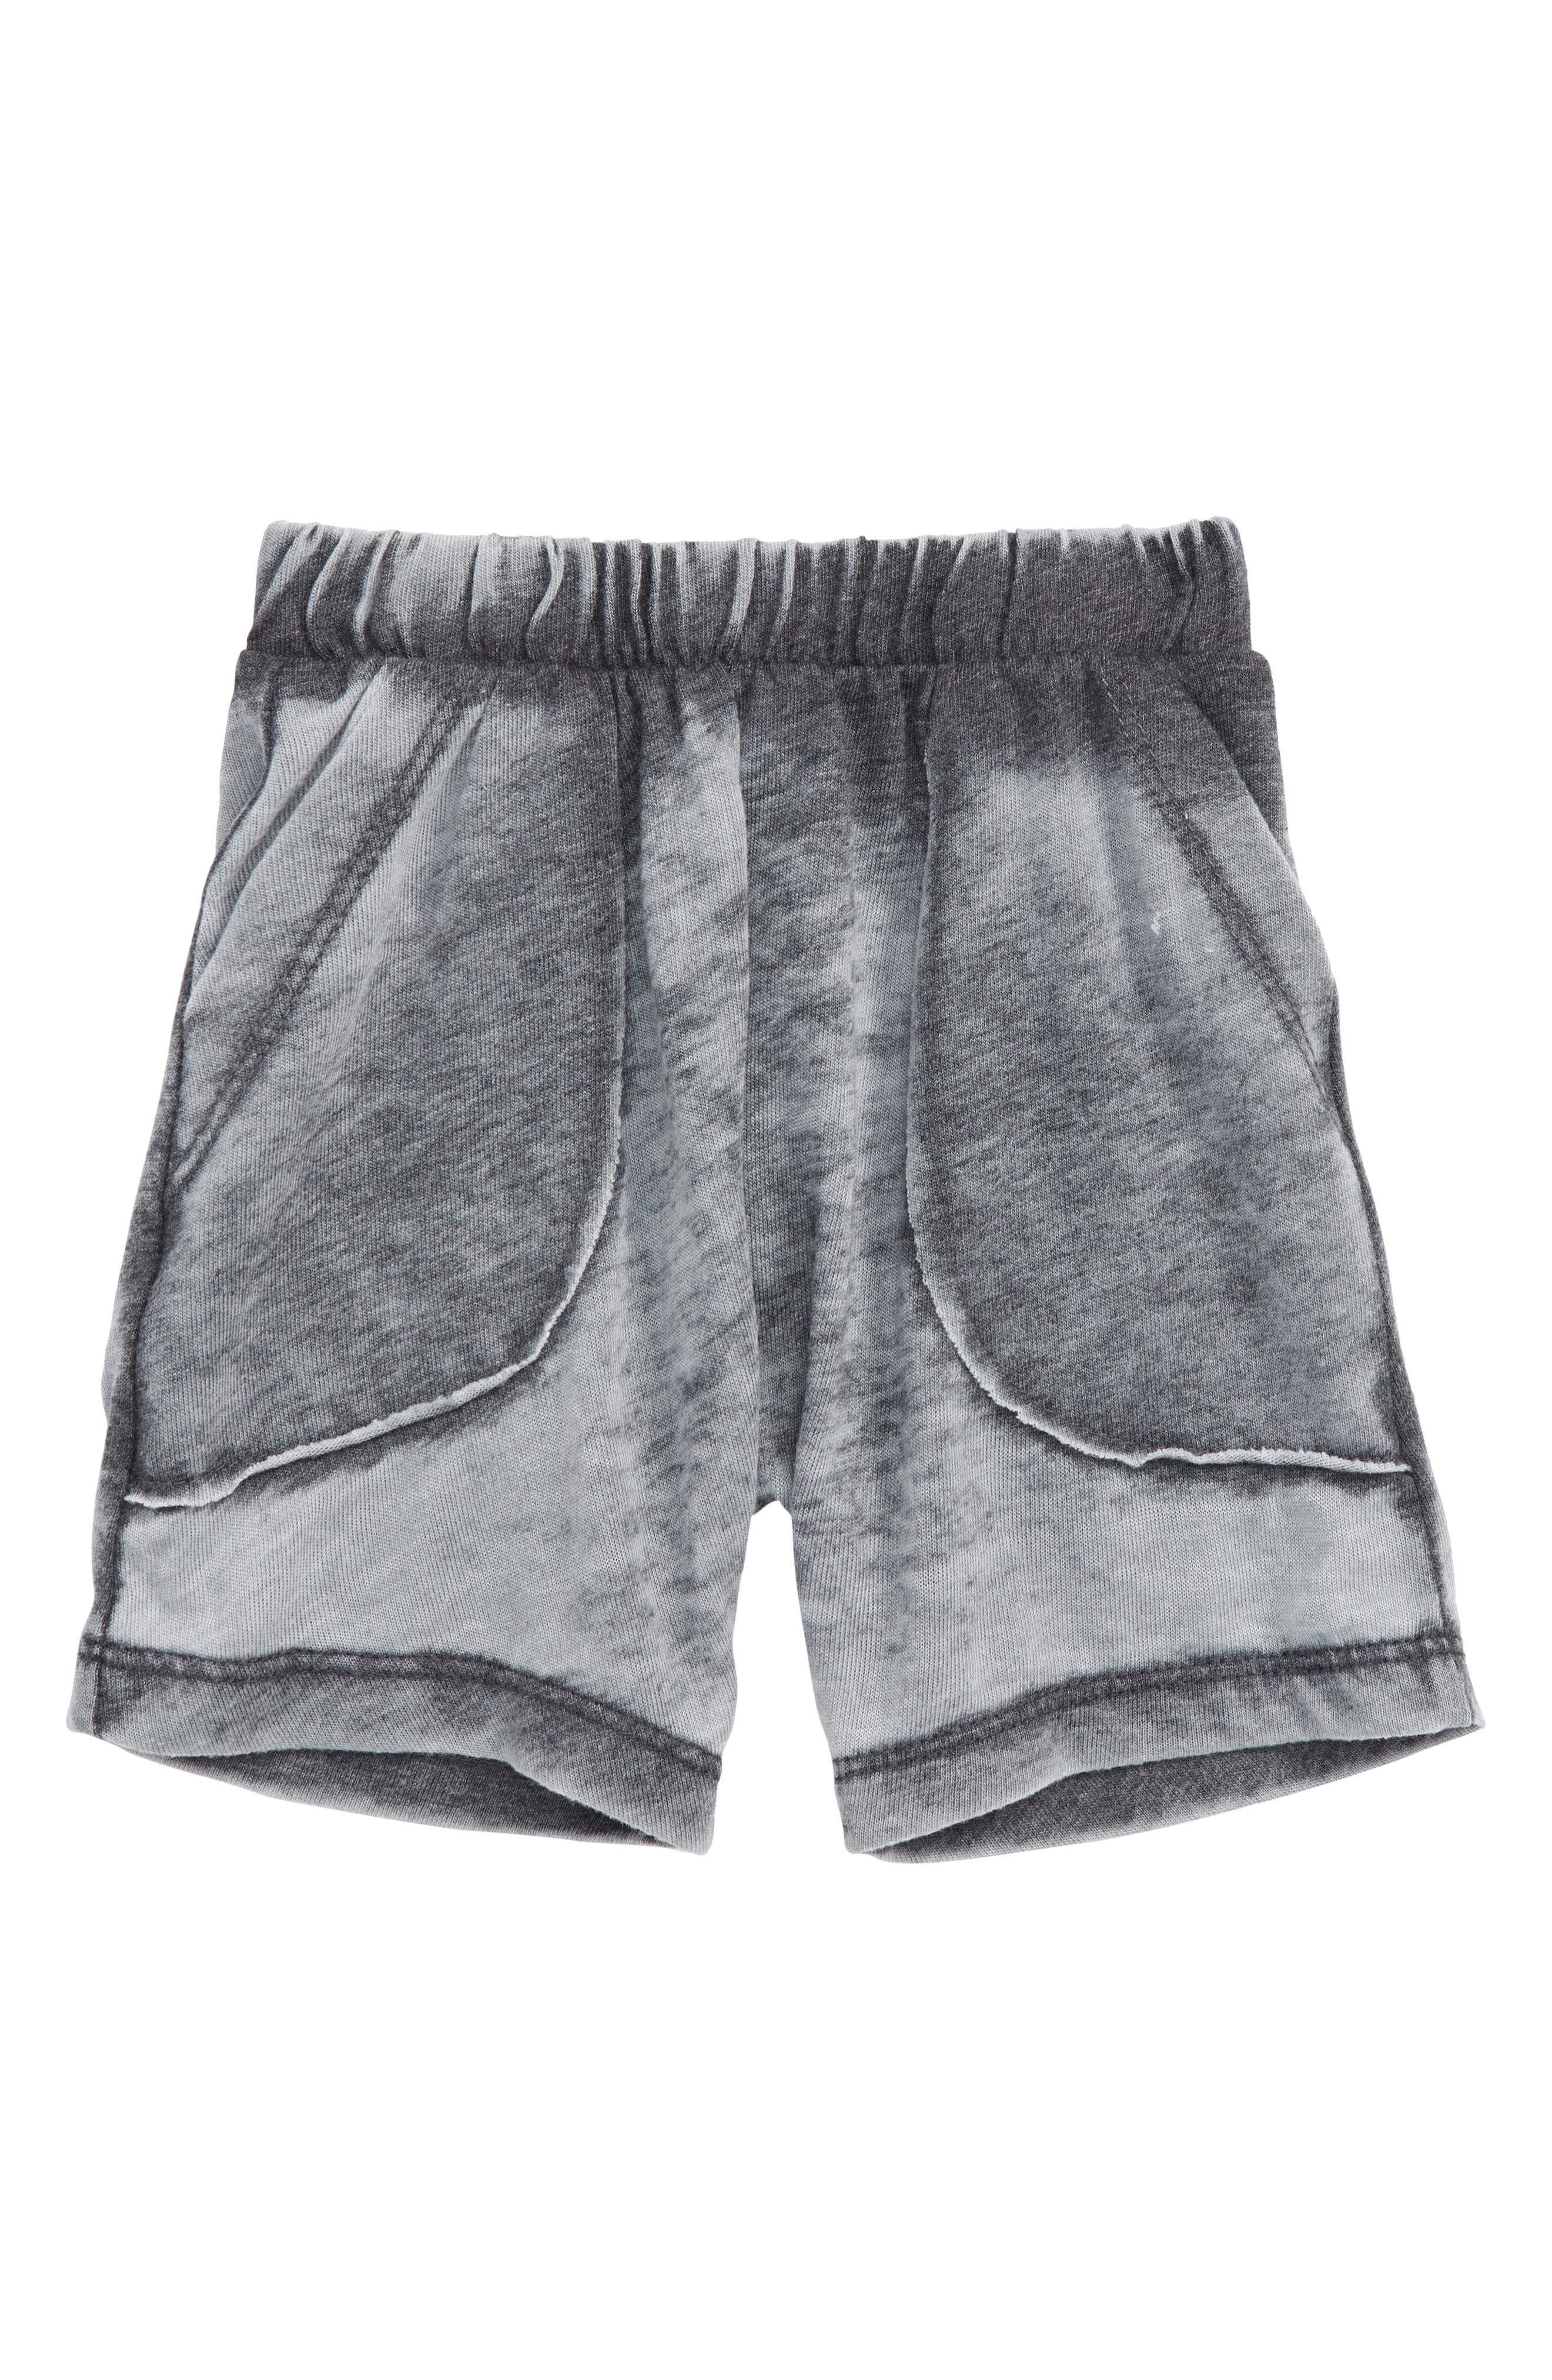 Knit Shorts,                             Main thumbnail 1, color,                             Smokey Black